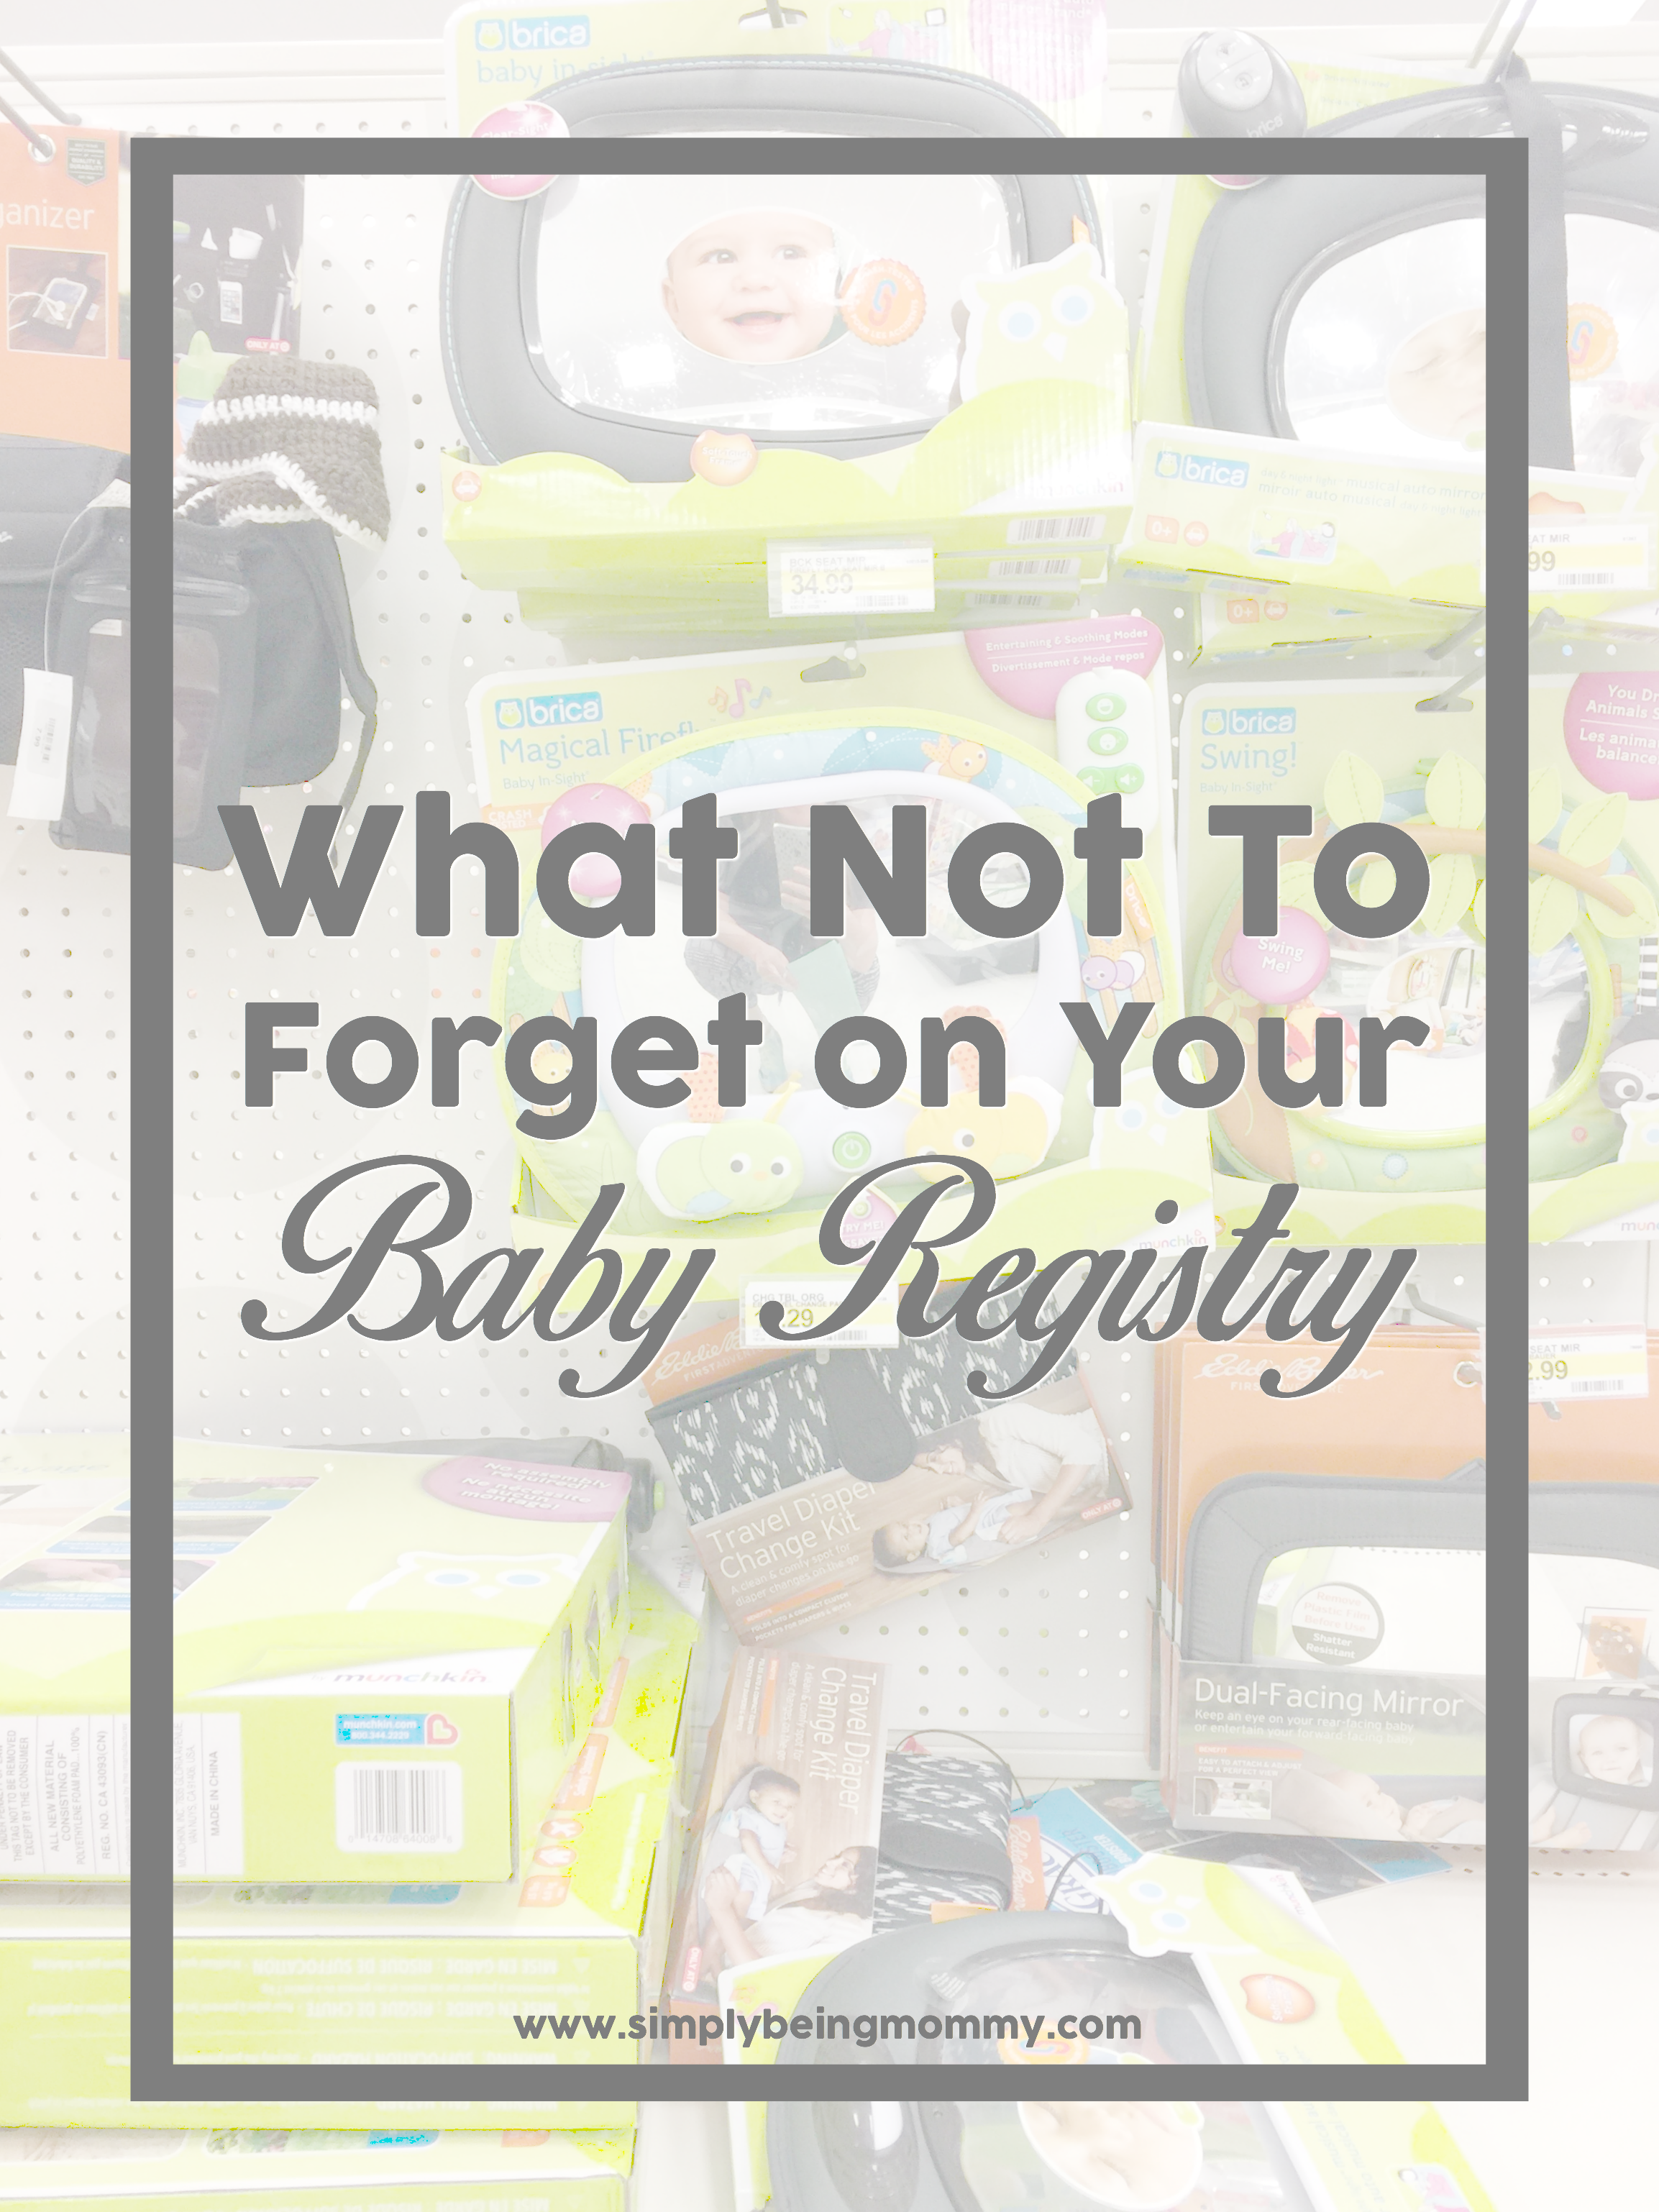 Being pregnant is such an exciting, yet overwhelming time in a woman's life. Registering for baby shouldn't be. Here is what not to forget on your baby registry.